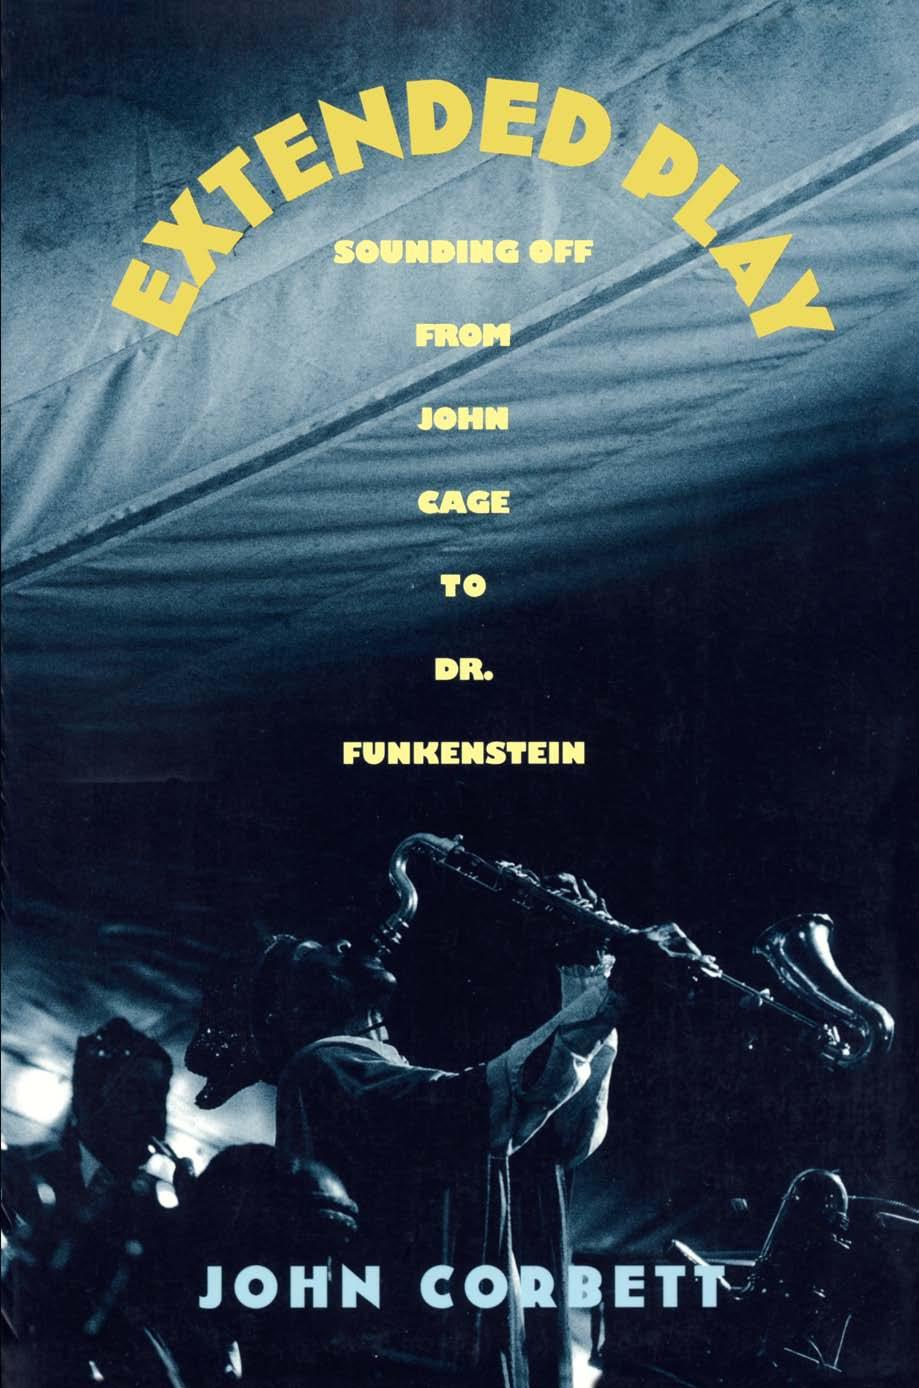 EXTEMDED PLAY. from. Sounding Off. John Cage to. Dr. Funkenstein ...